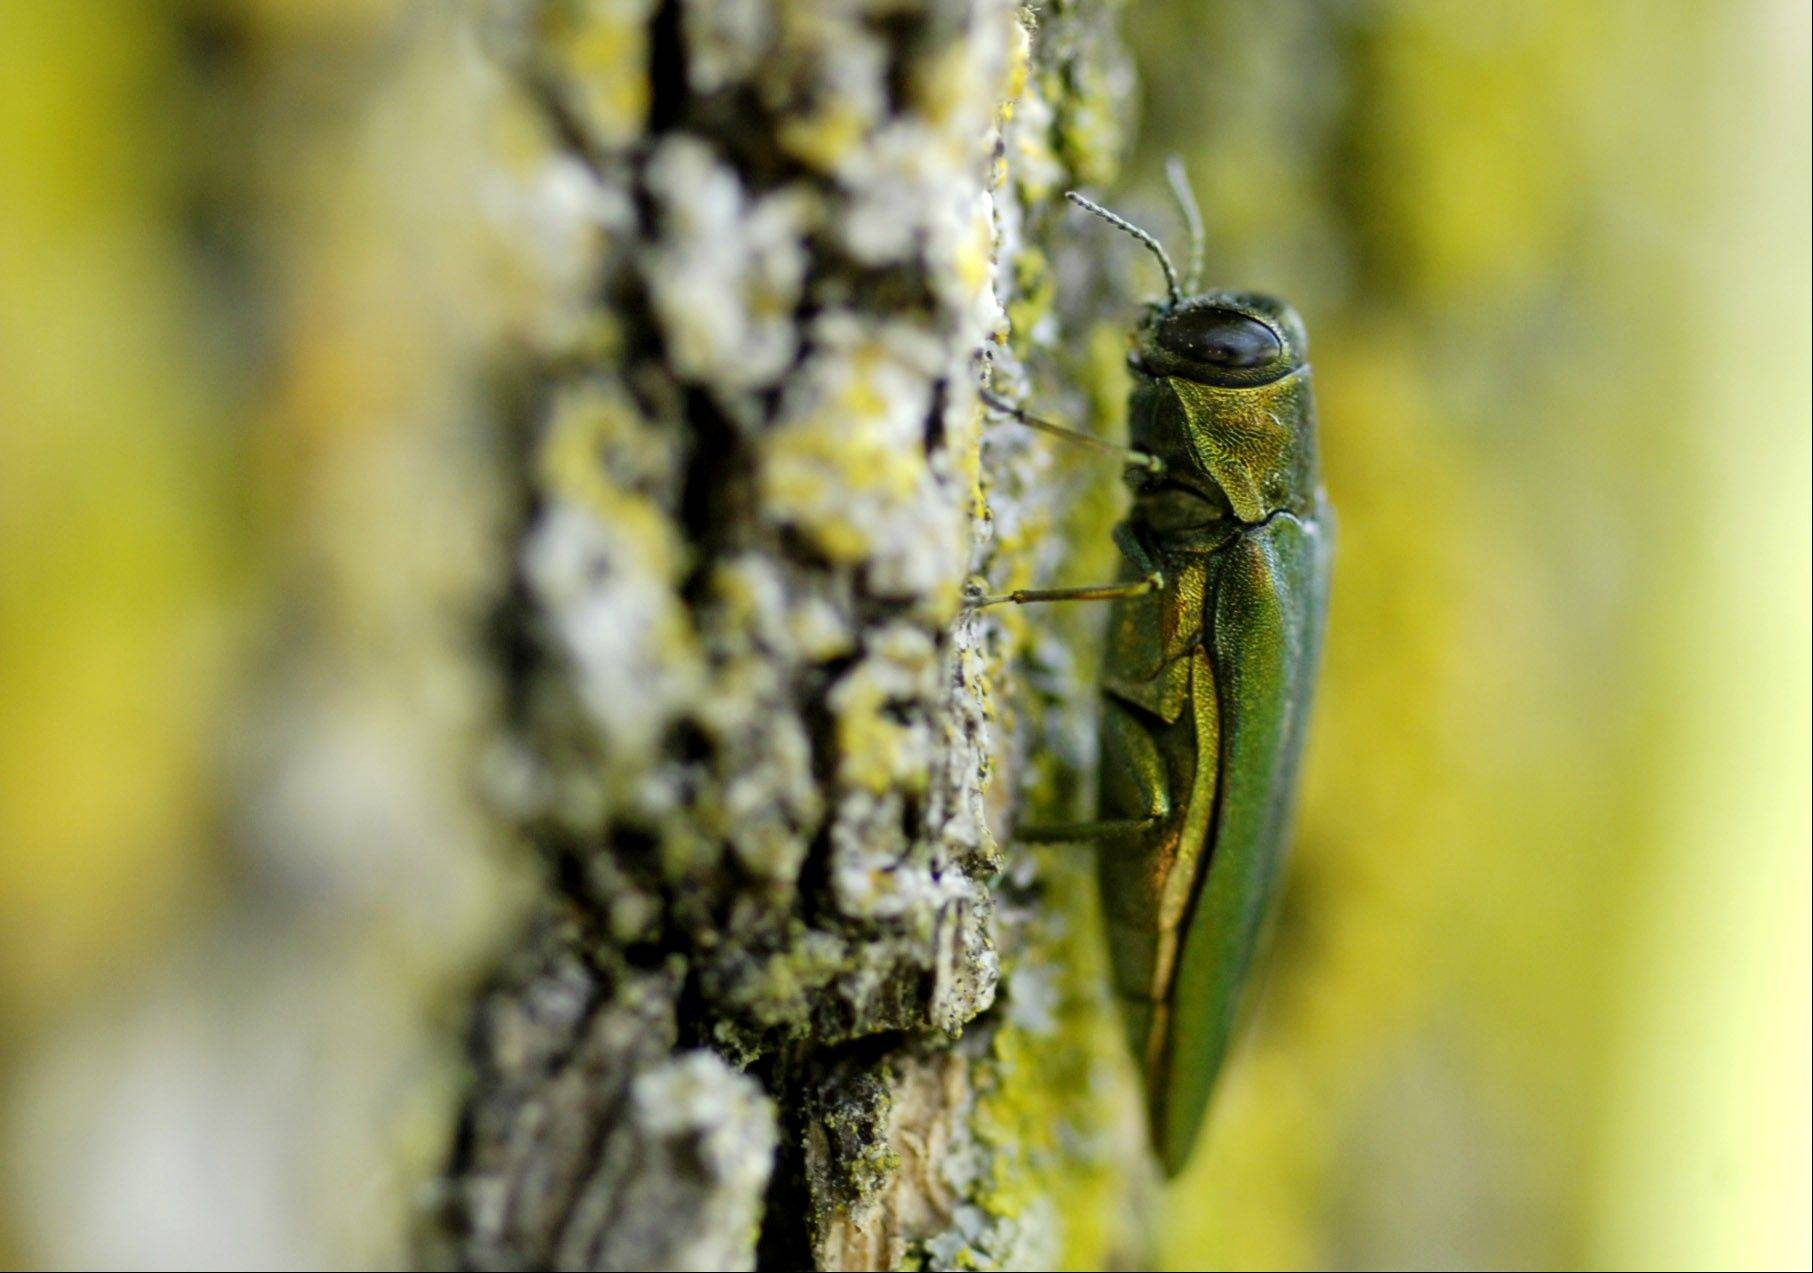 An Emerald Ash Borer sits on an ash tree in Campton Township, where the first outbreak of the beetle infestation in Illinois was found.